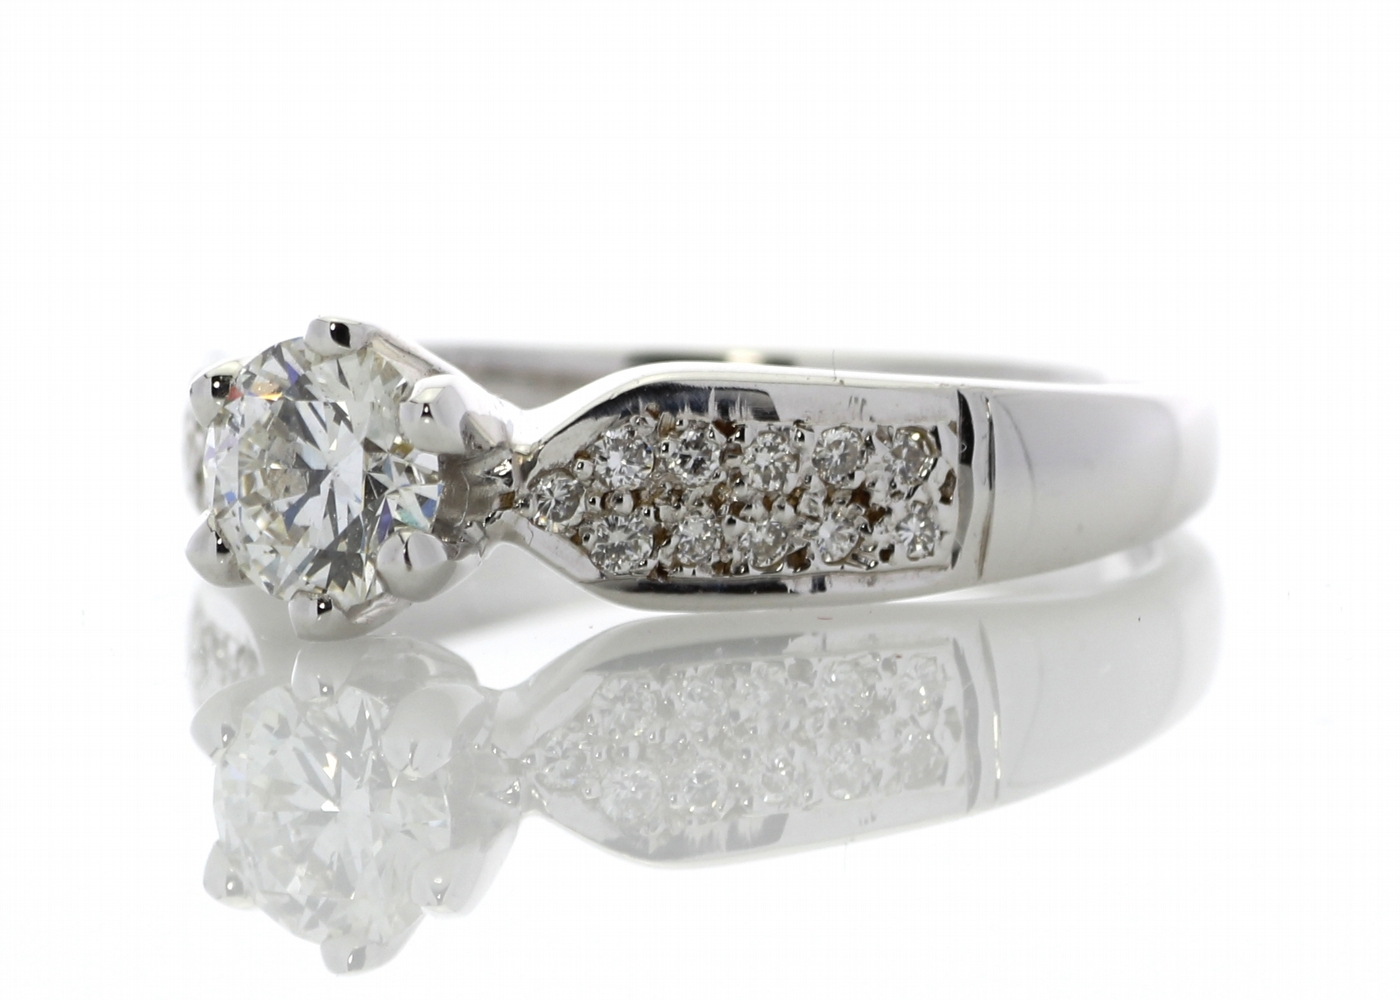 Lot 16 - 18ct White Gold Single Stone Claw Set With Stone Set Shoulders Diamond Ring 0.76ct (0.54) Carats